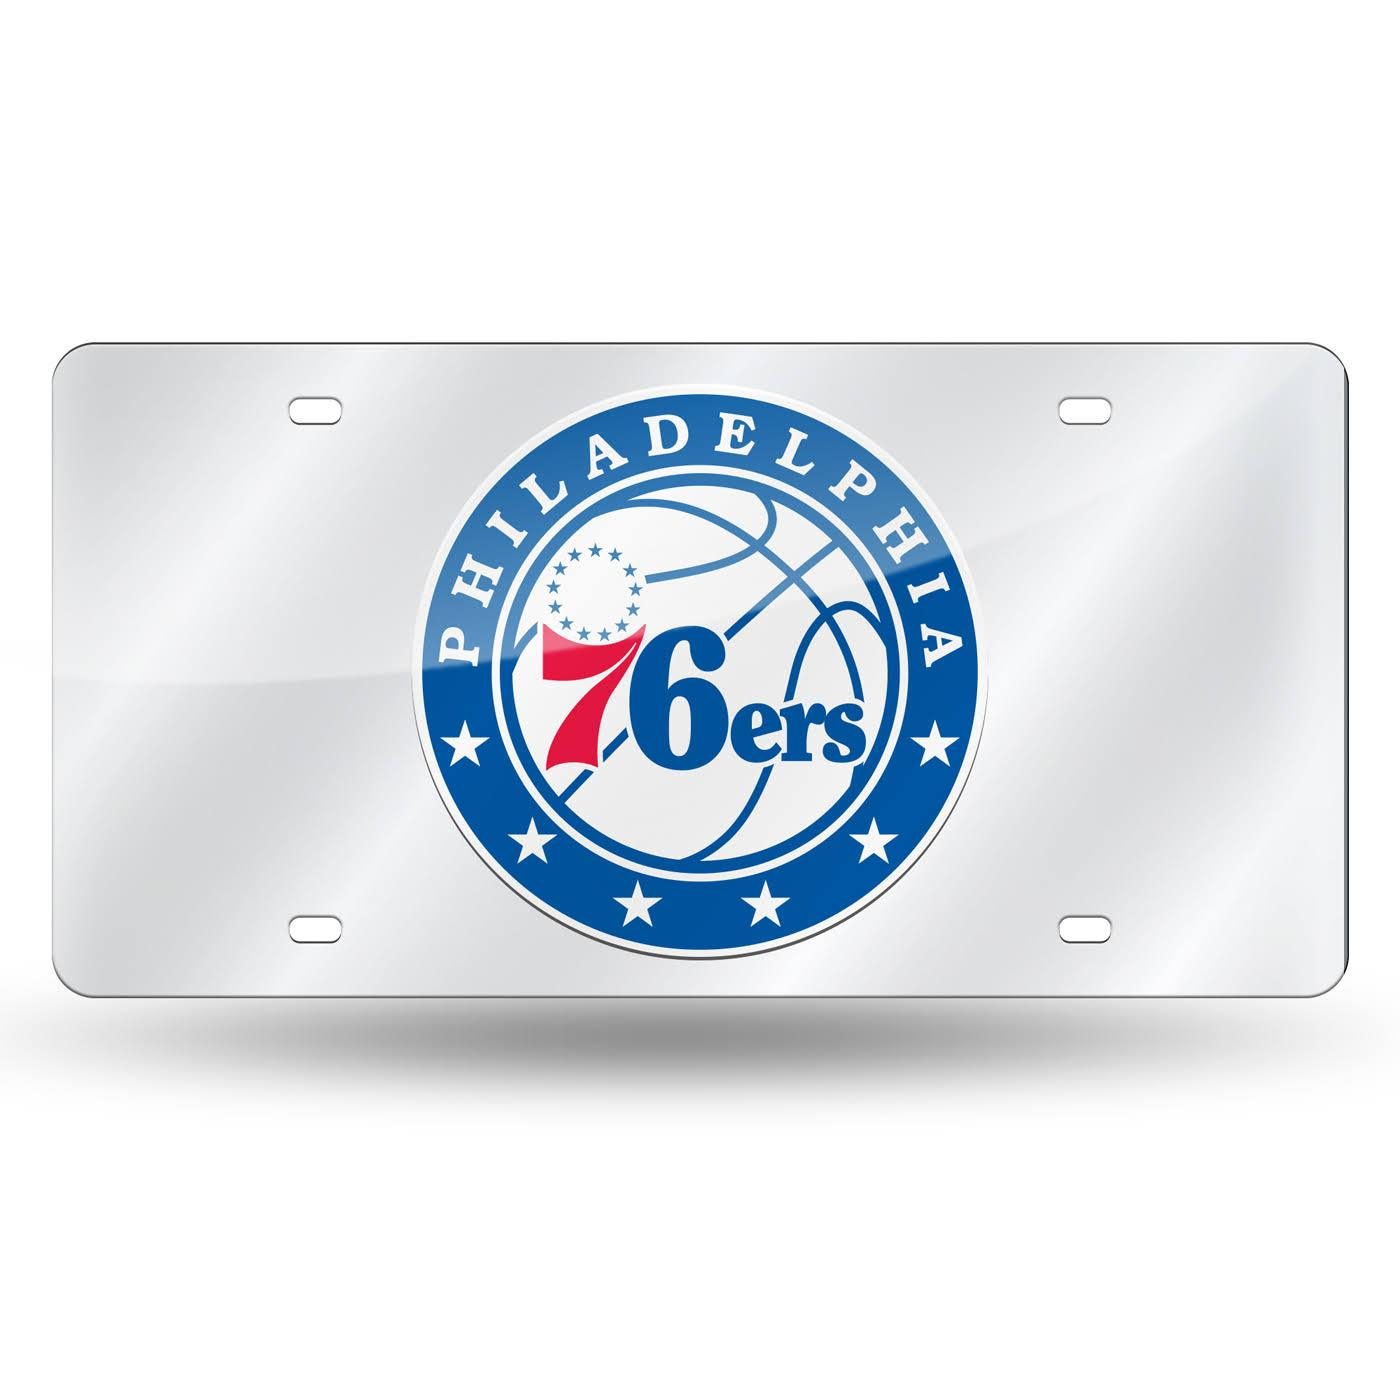 Décor Nba Philadelphia 76Ers Framed Logo Mirror with regard to Rhein Accent Mirrors (Image 12 of 30)